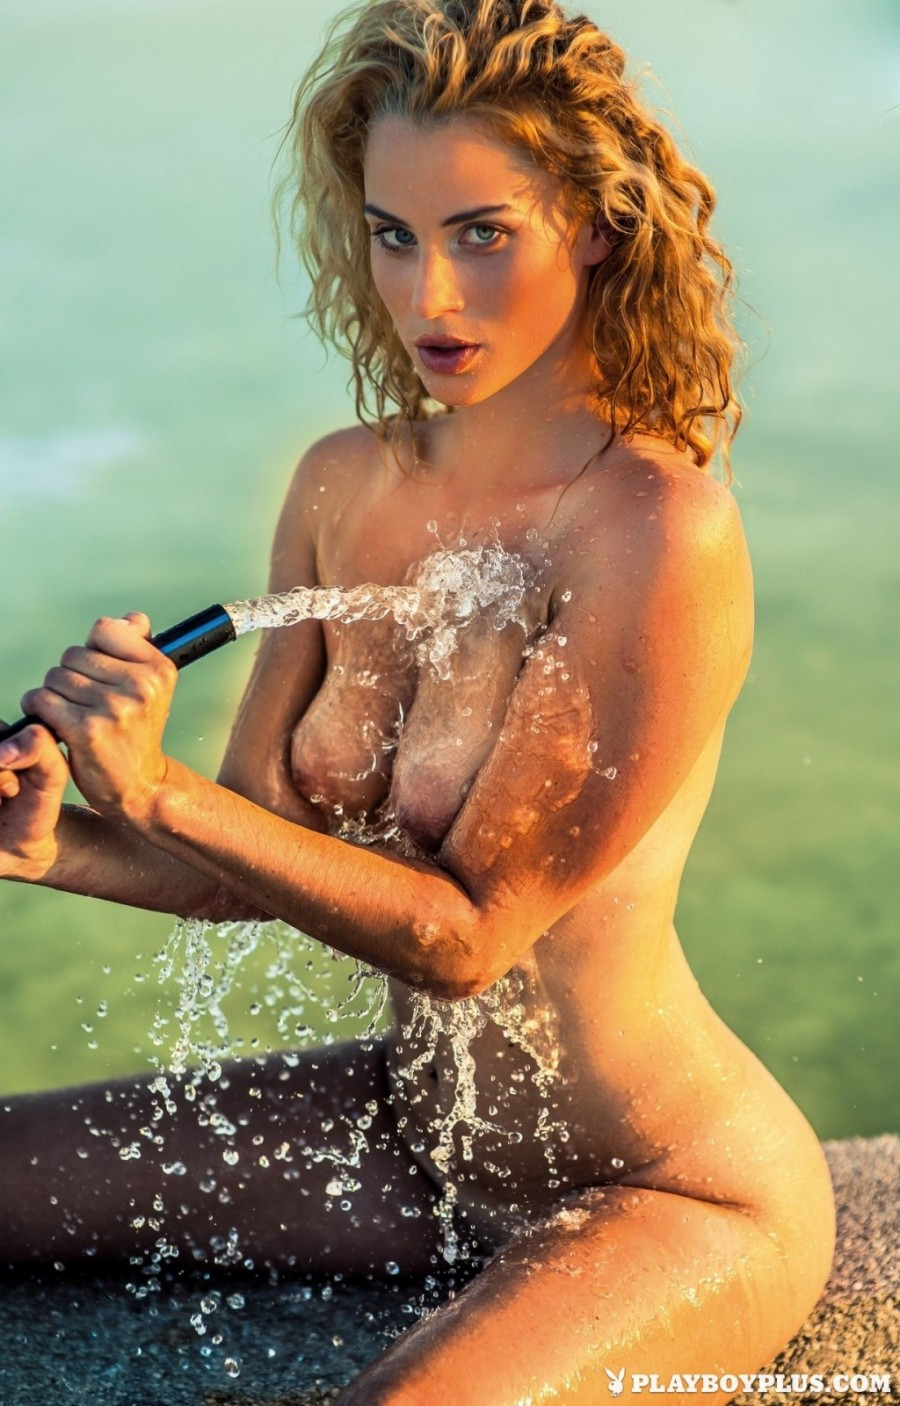 Wet wild times with a hot blonde